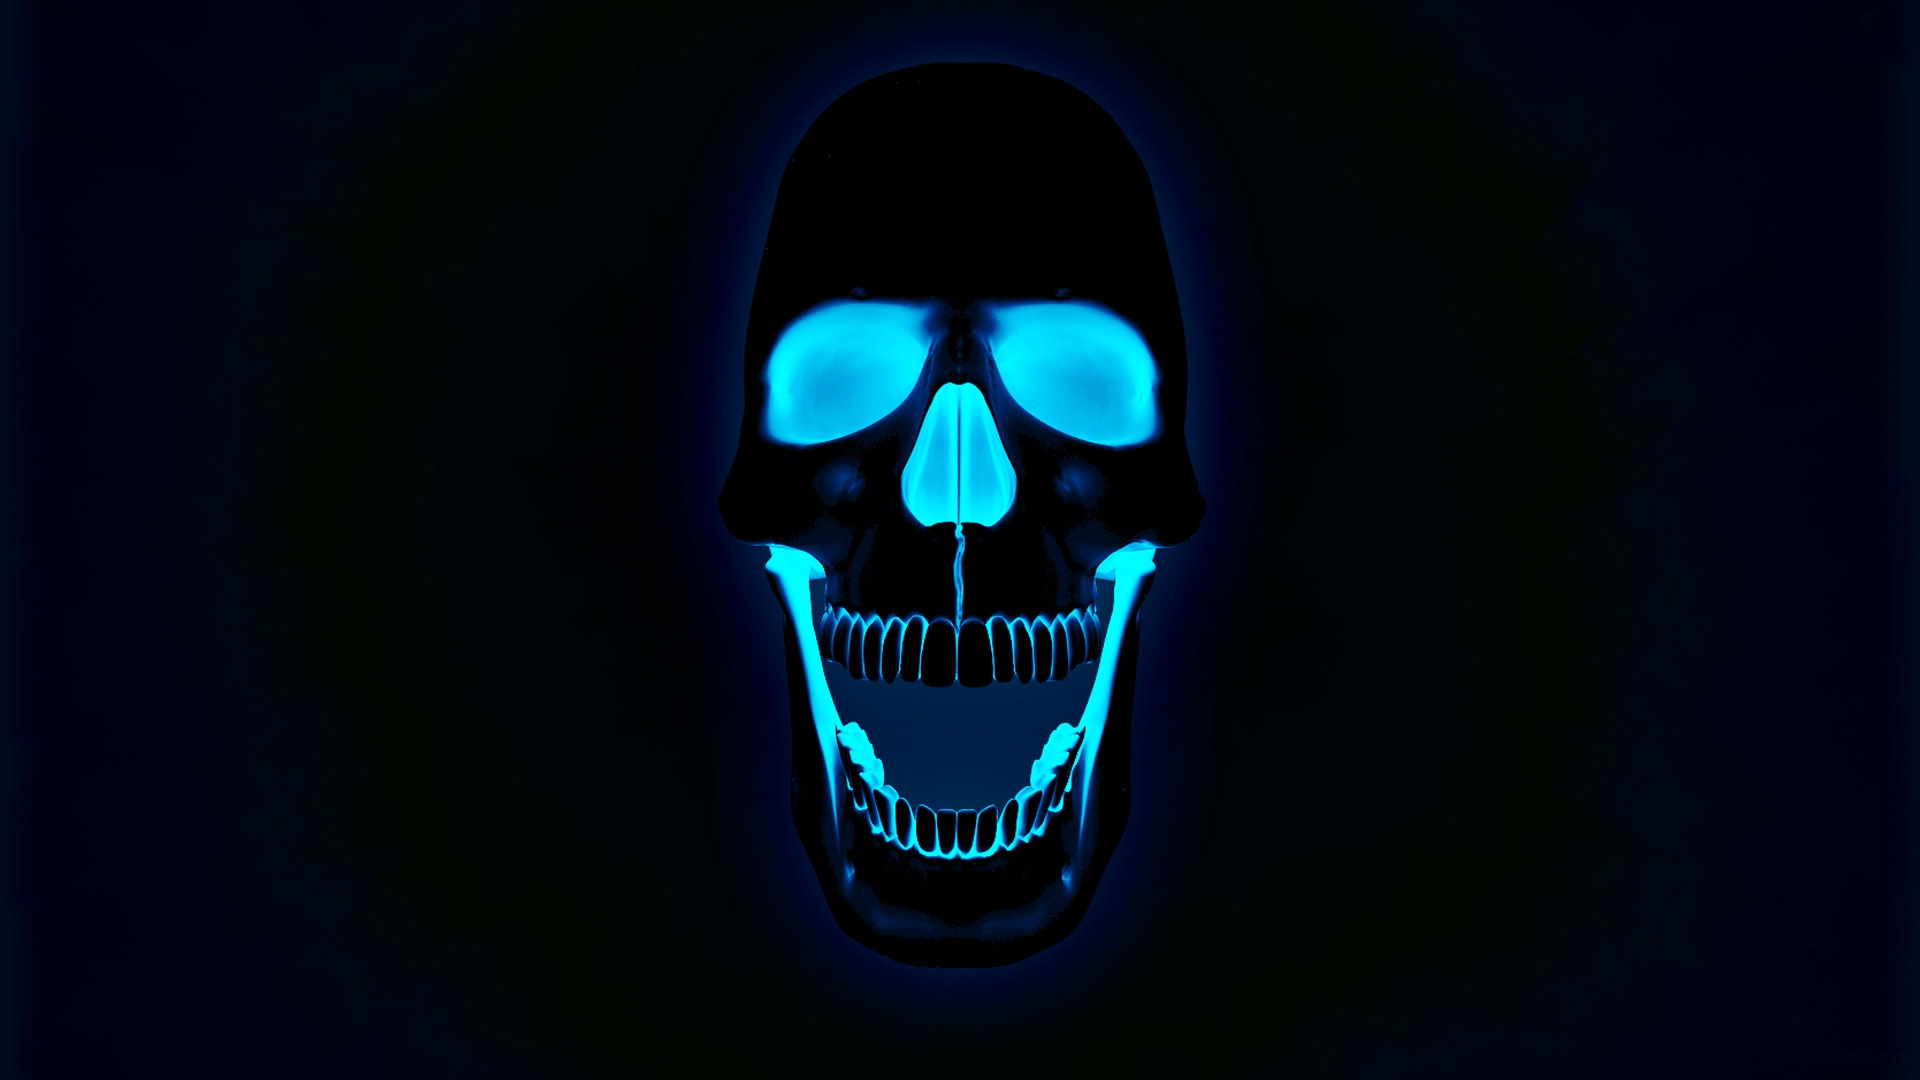 Glowing Neon Skull PhotosHD WallpapersImagesPictures 1920x1080